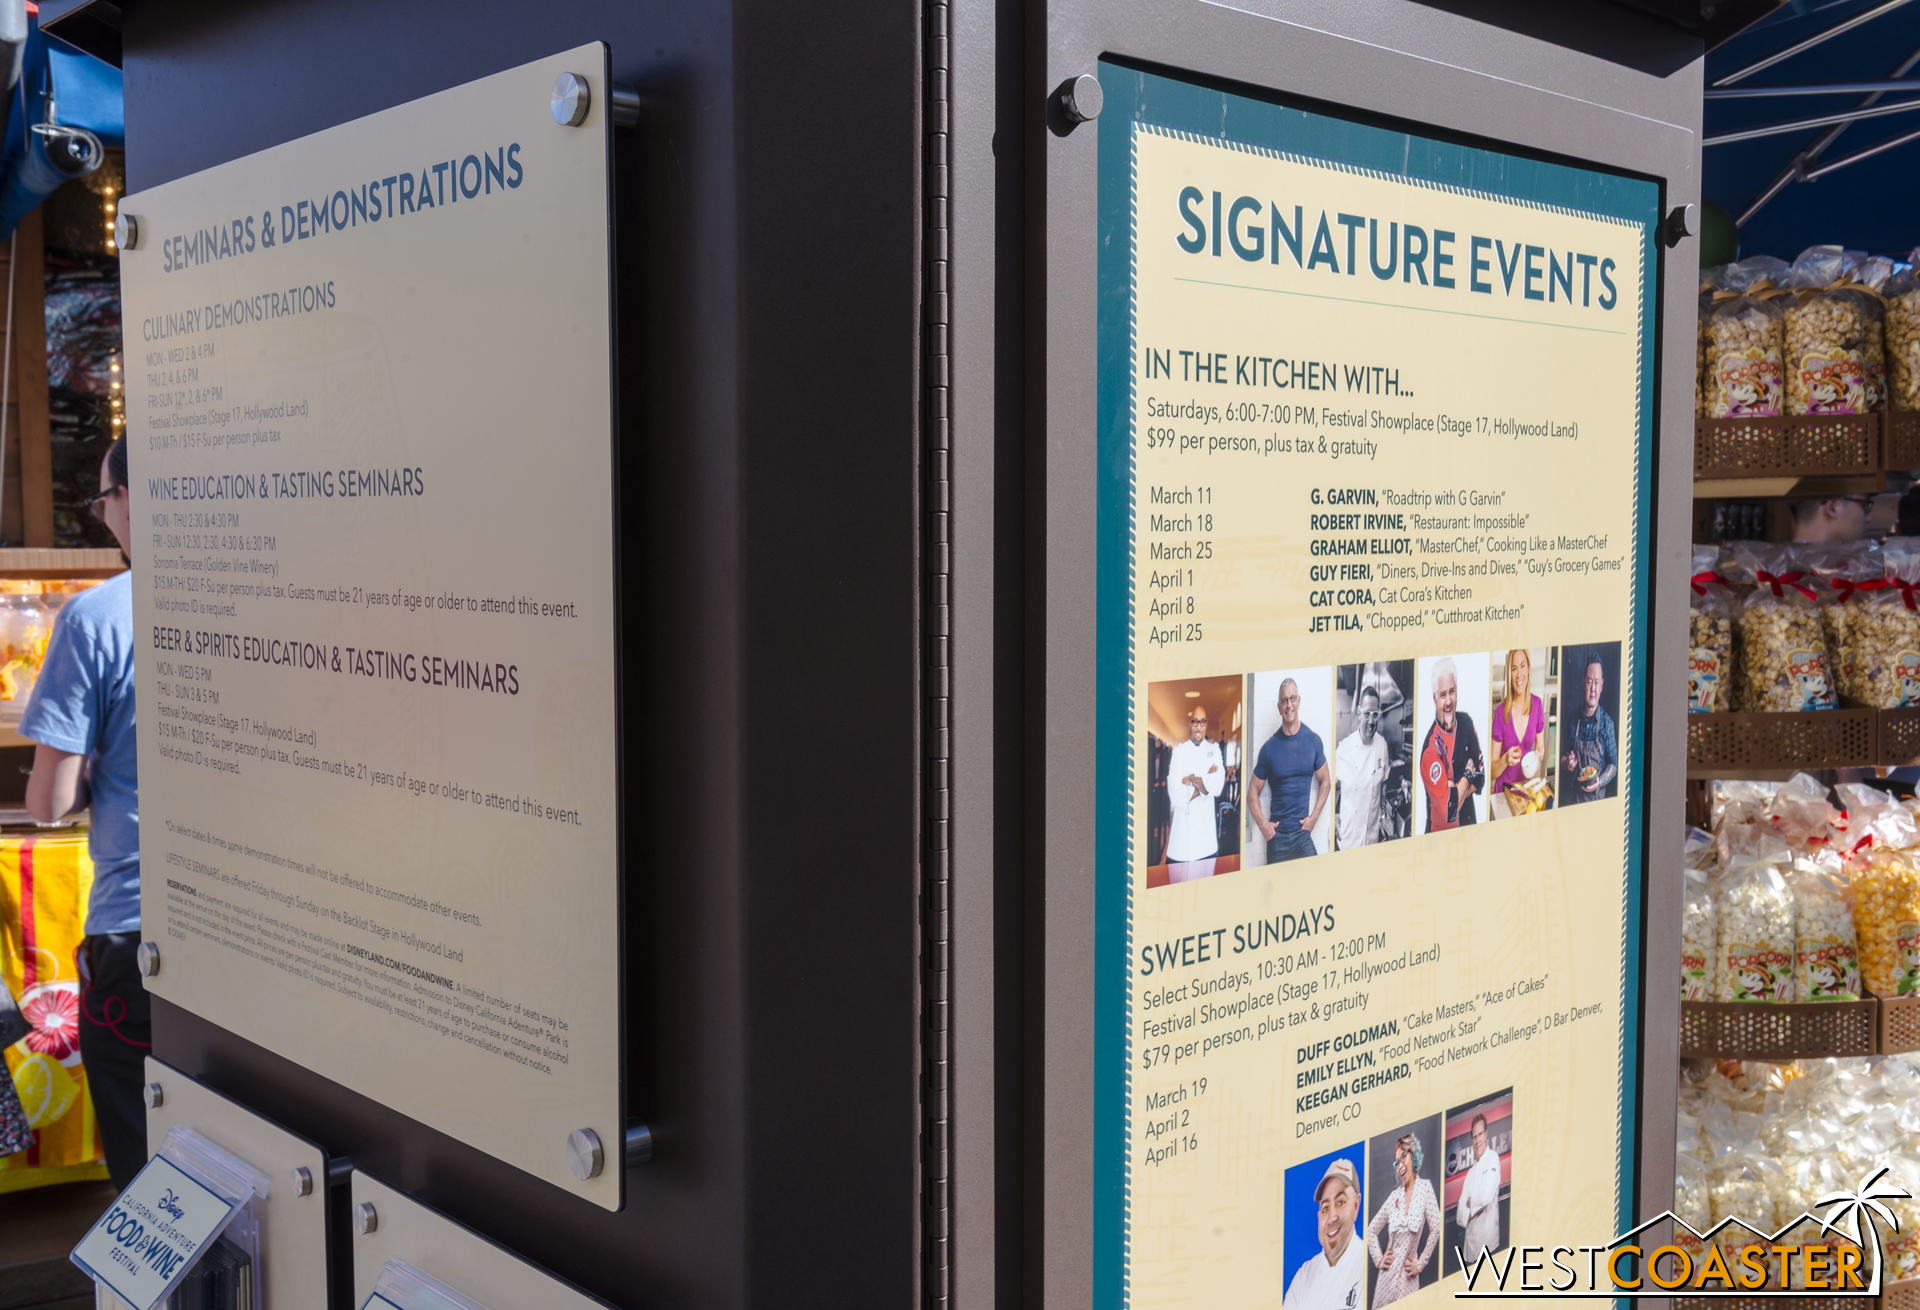 There are multiple displays around the Festival areas with listings of the events happening for the run.